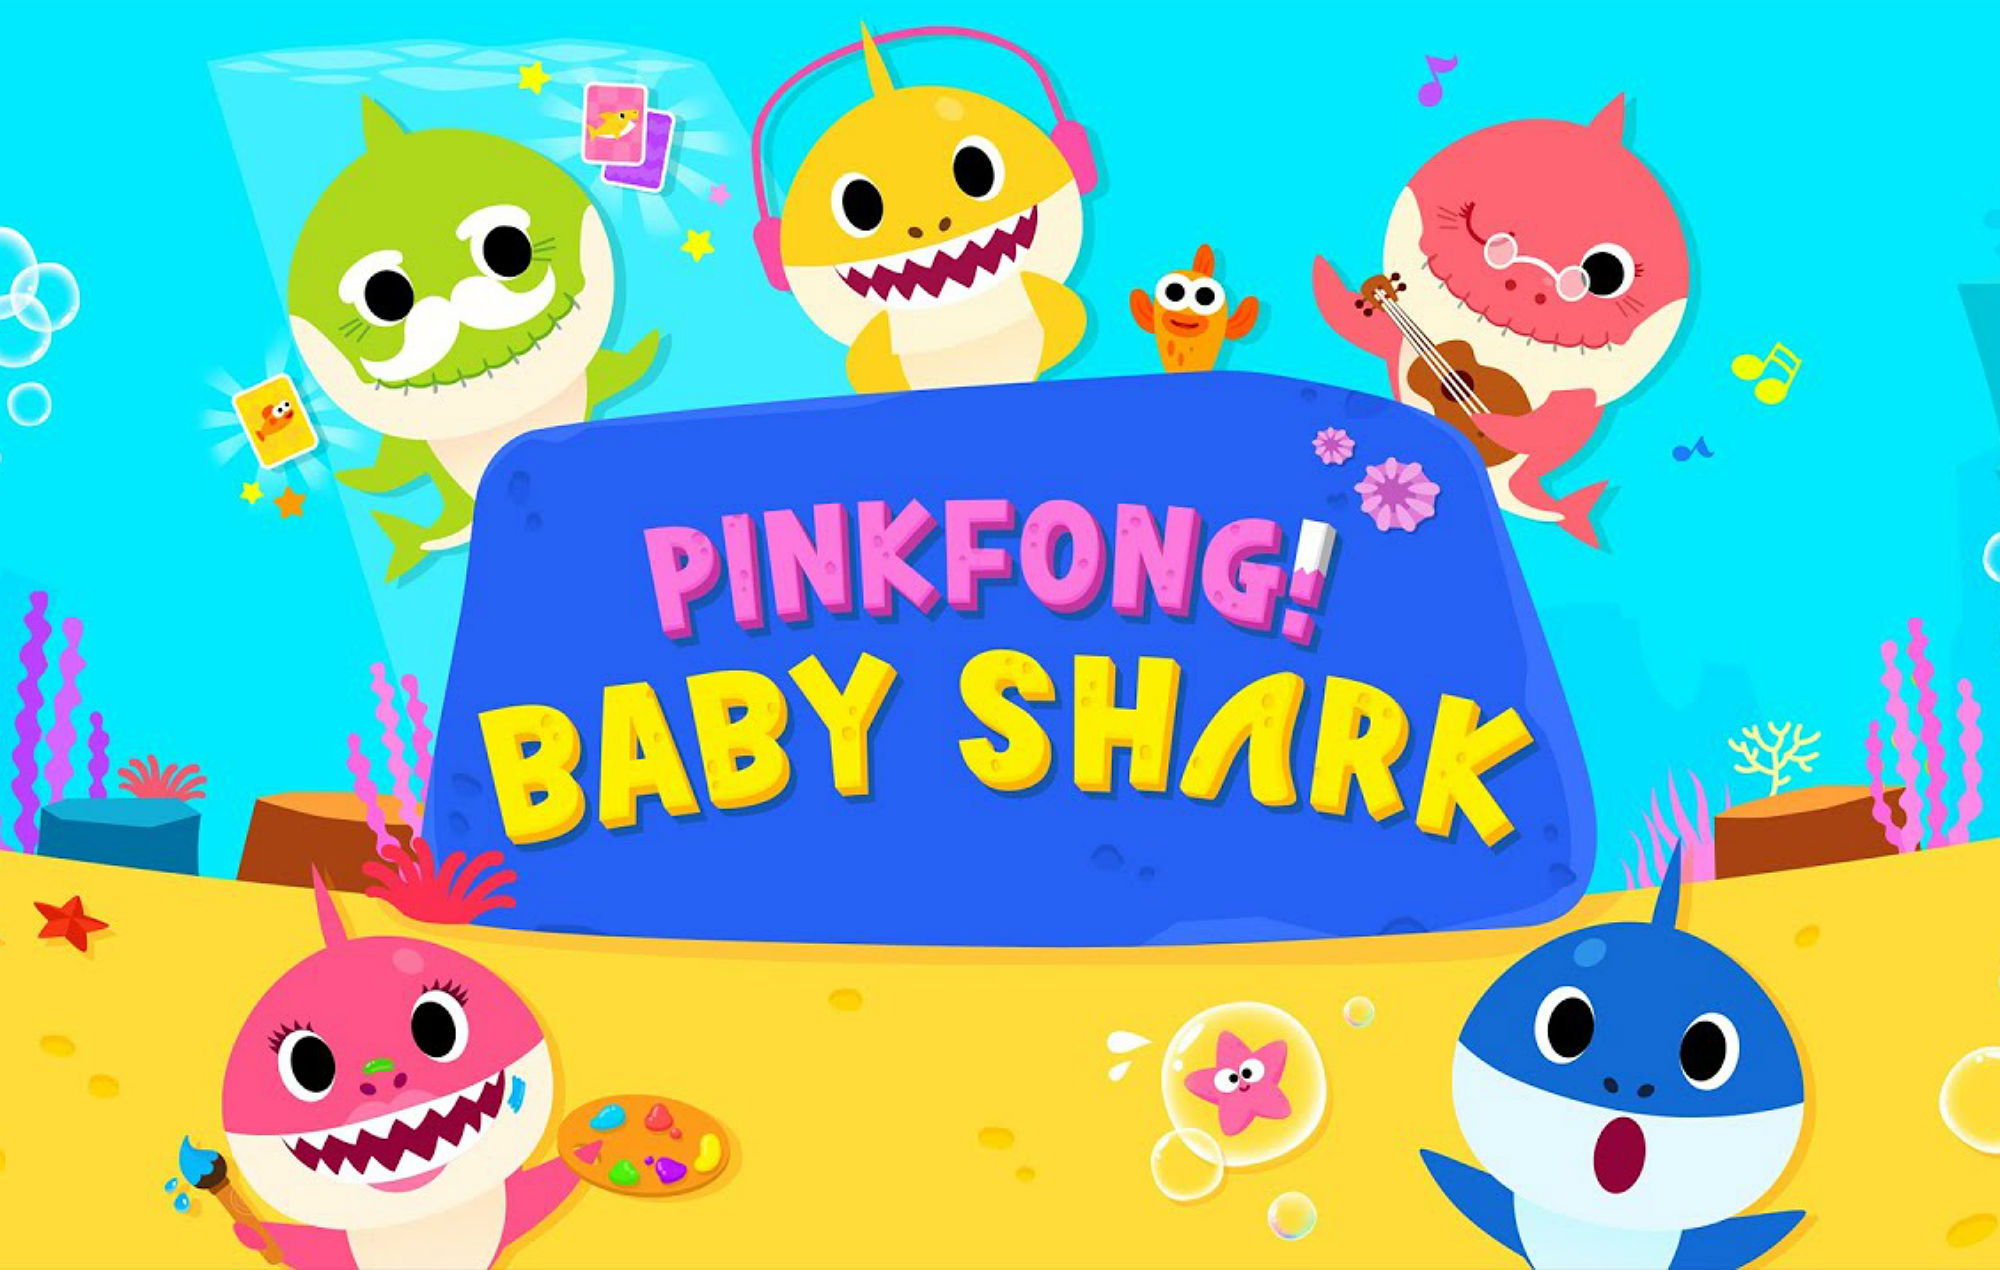 Baby Shark is in the charts but no one is getting the ...